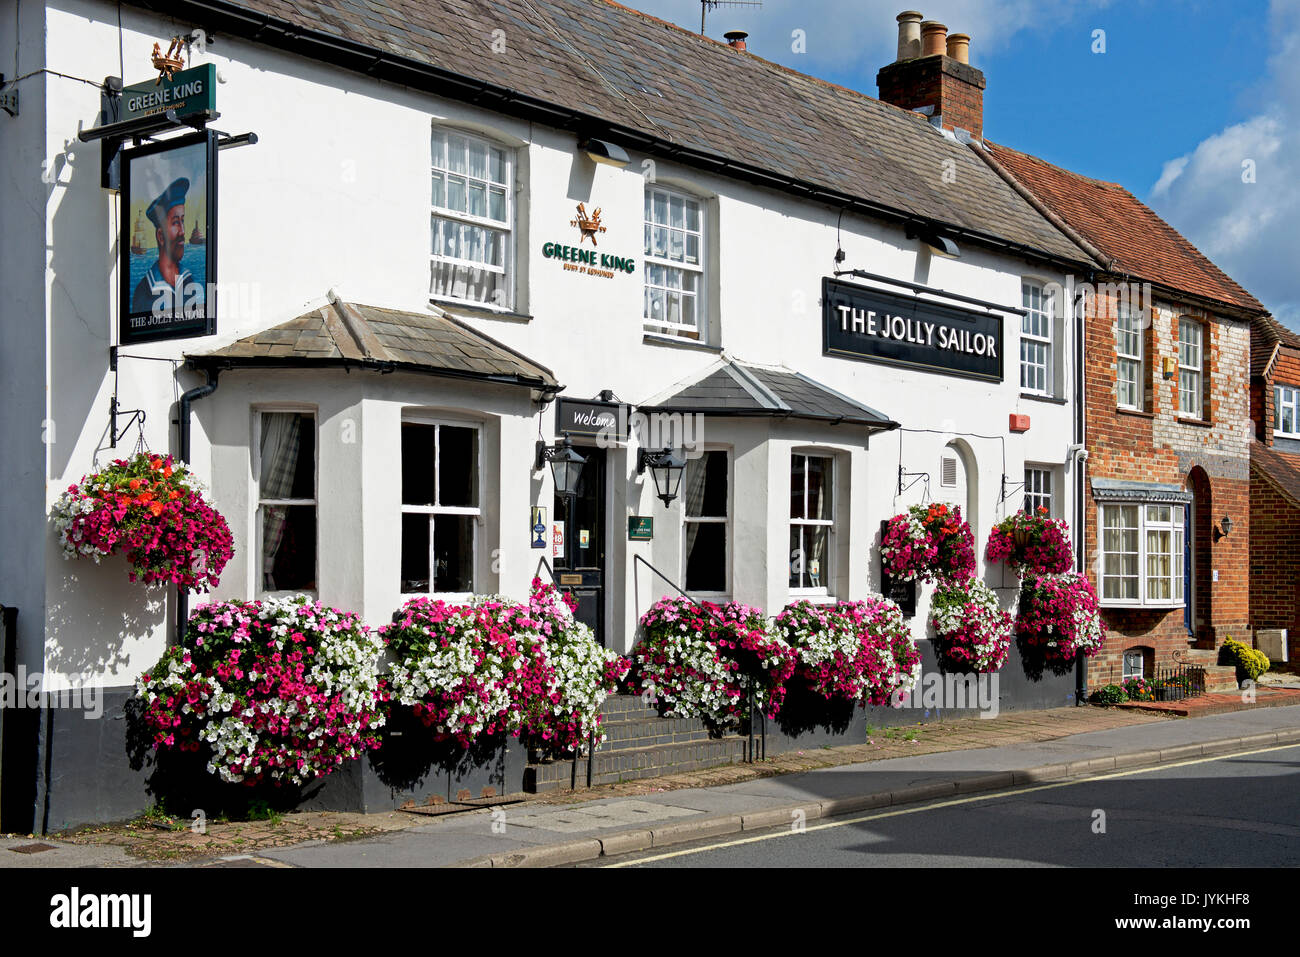 Le Jolly Sailor pub, West Street, Farnham, Surrey, Angleterre, Royaume-Uni Photo Stock